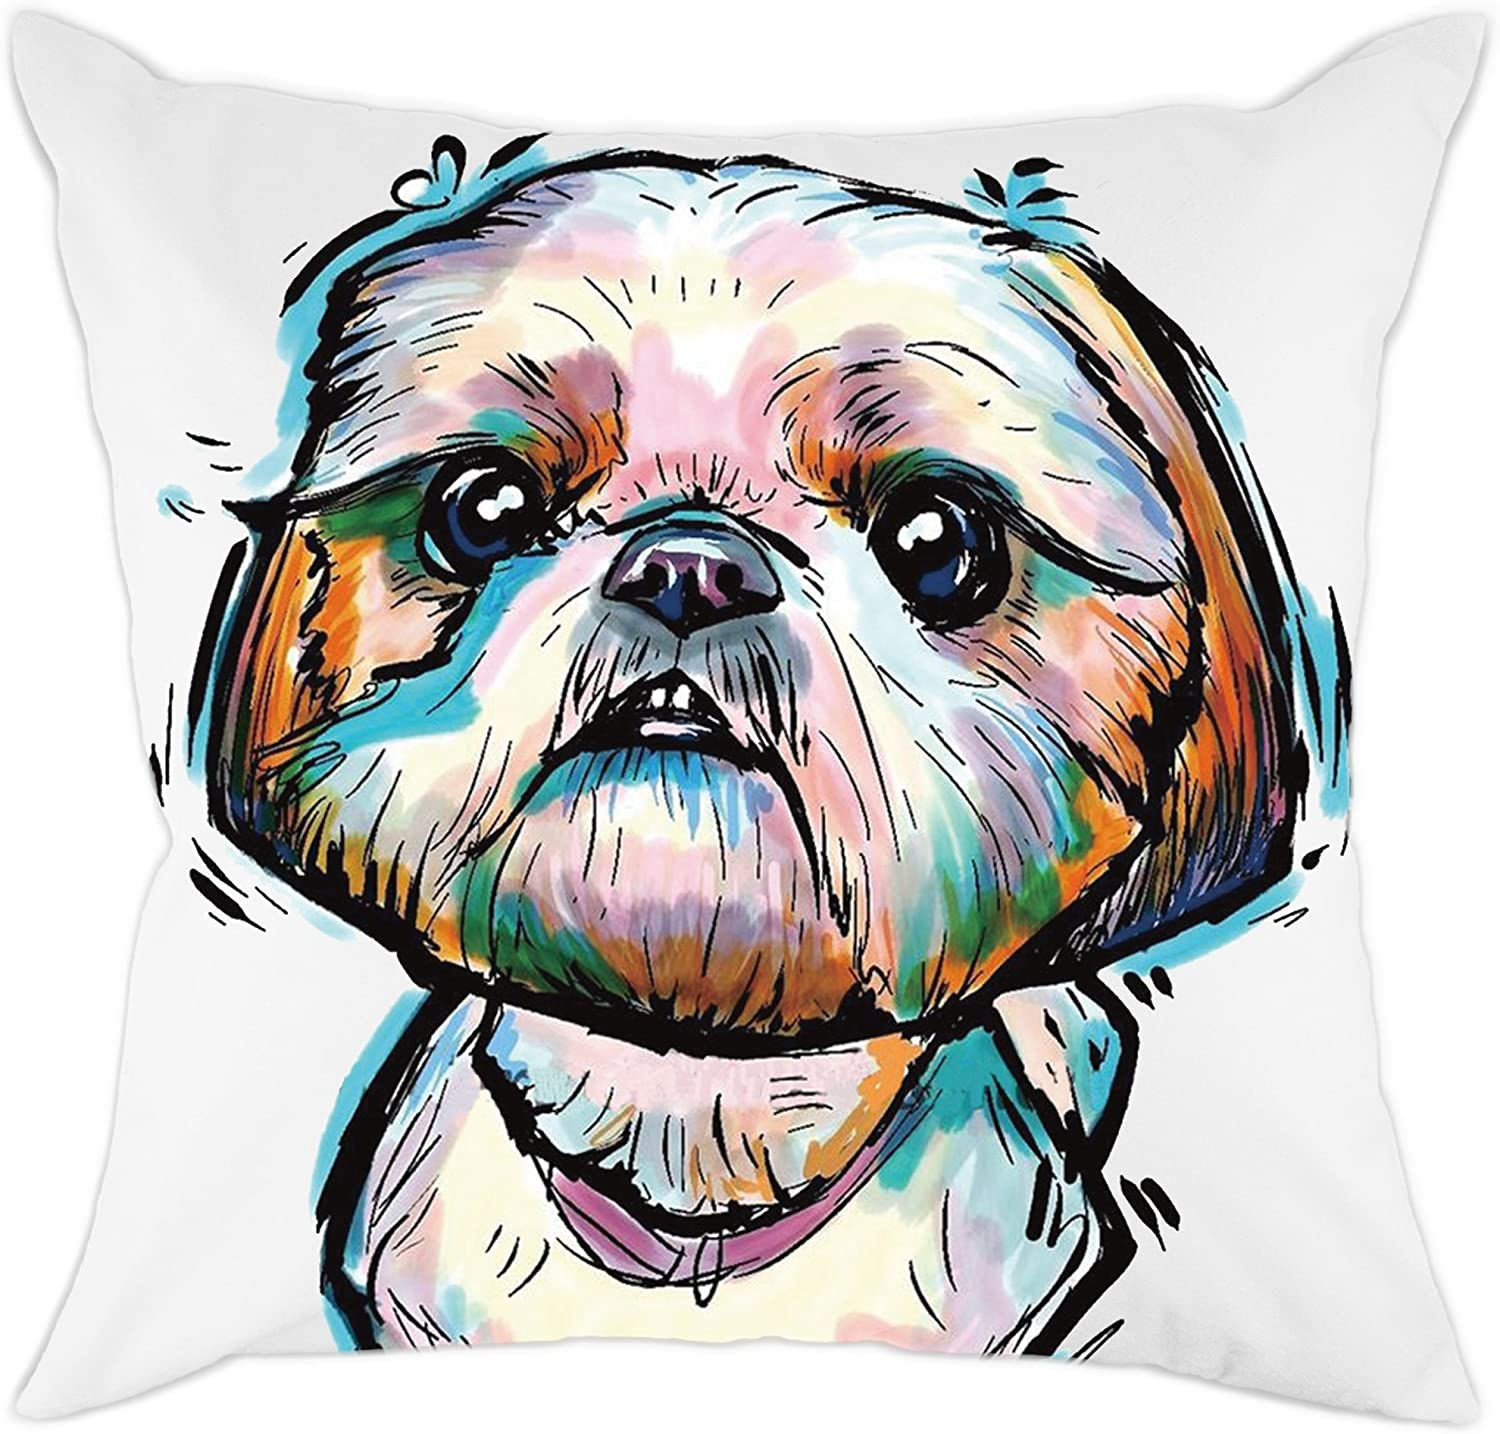 Redland Art Cute Pet Shih Tzu Dogs Pattern Cotton Polyester Throw Pillow Covers Cushion Cases Home Decor Square 18